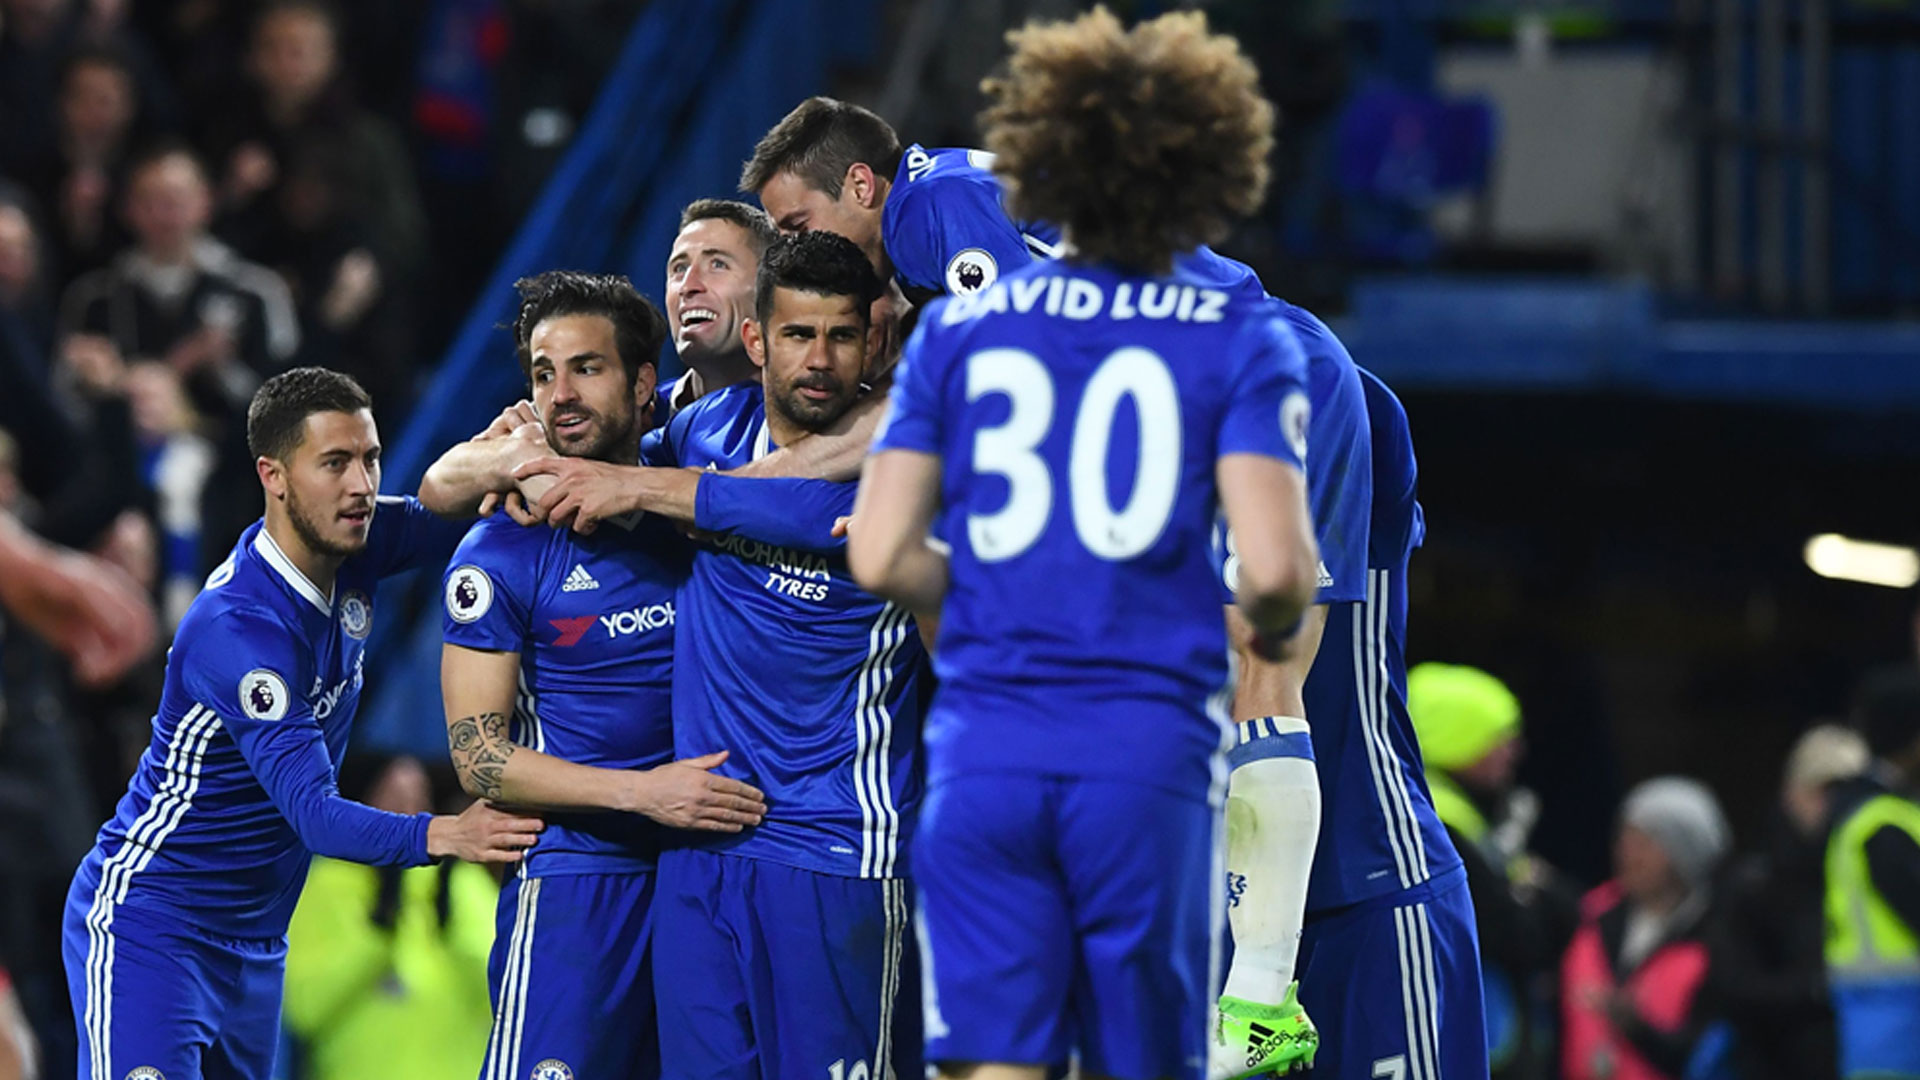 Premier League table based on current form: Chelsea not top